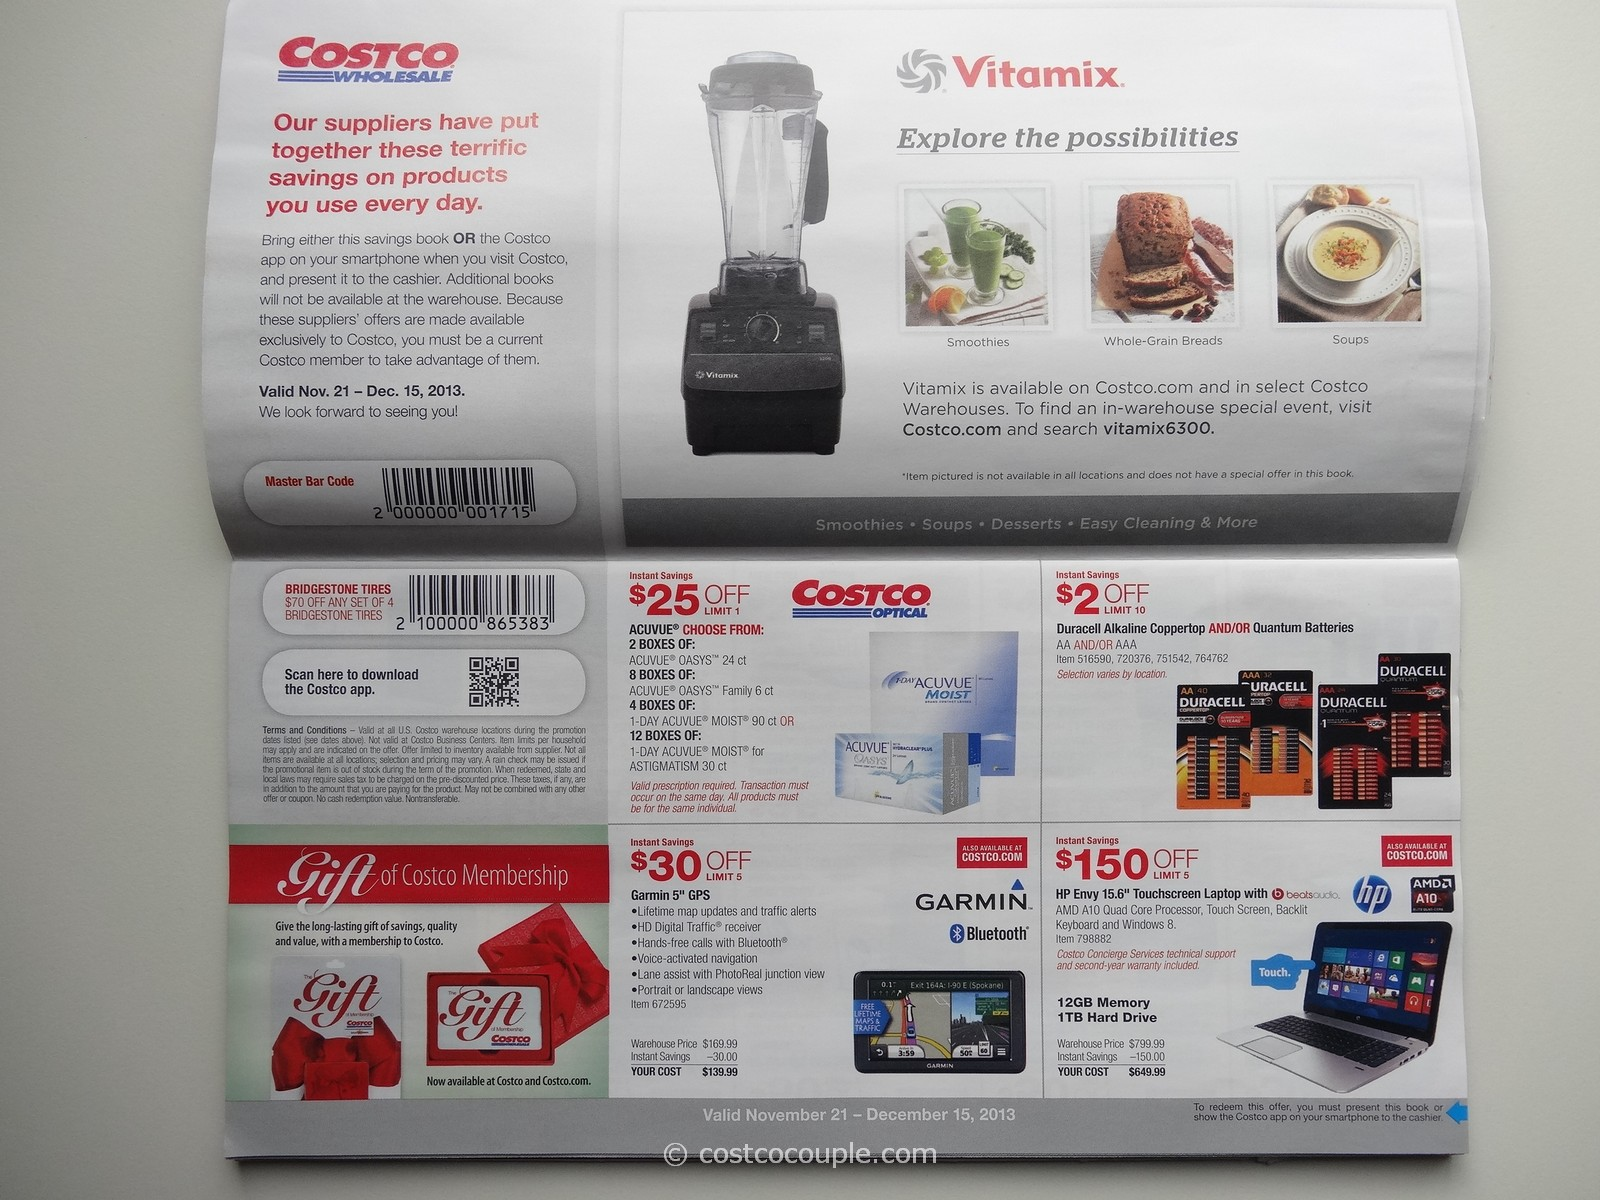 costco kitchen aid redoing cabinets december 2013 coupon book 11/21/13 to 12/15/13